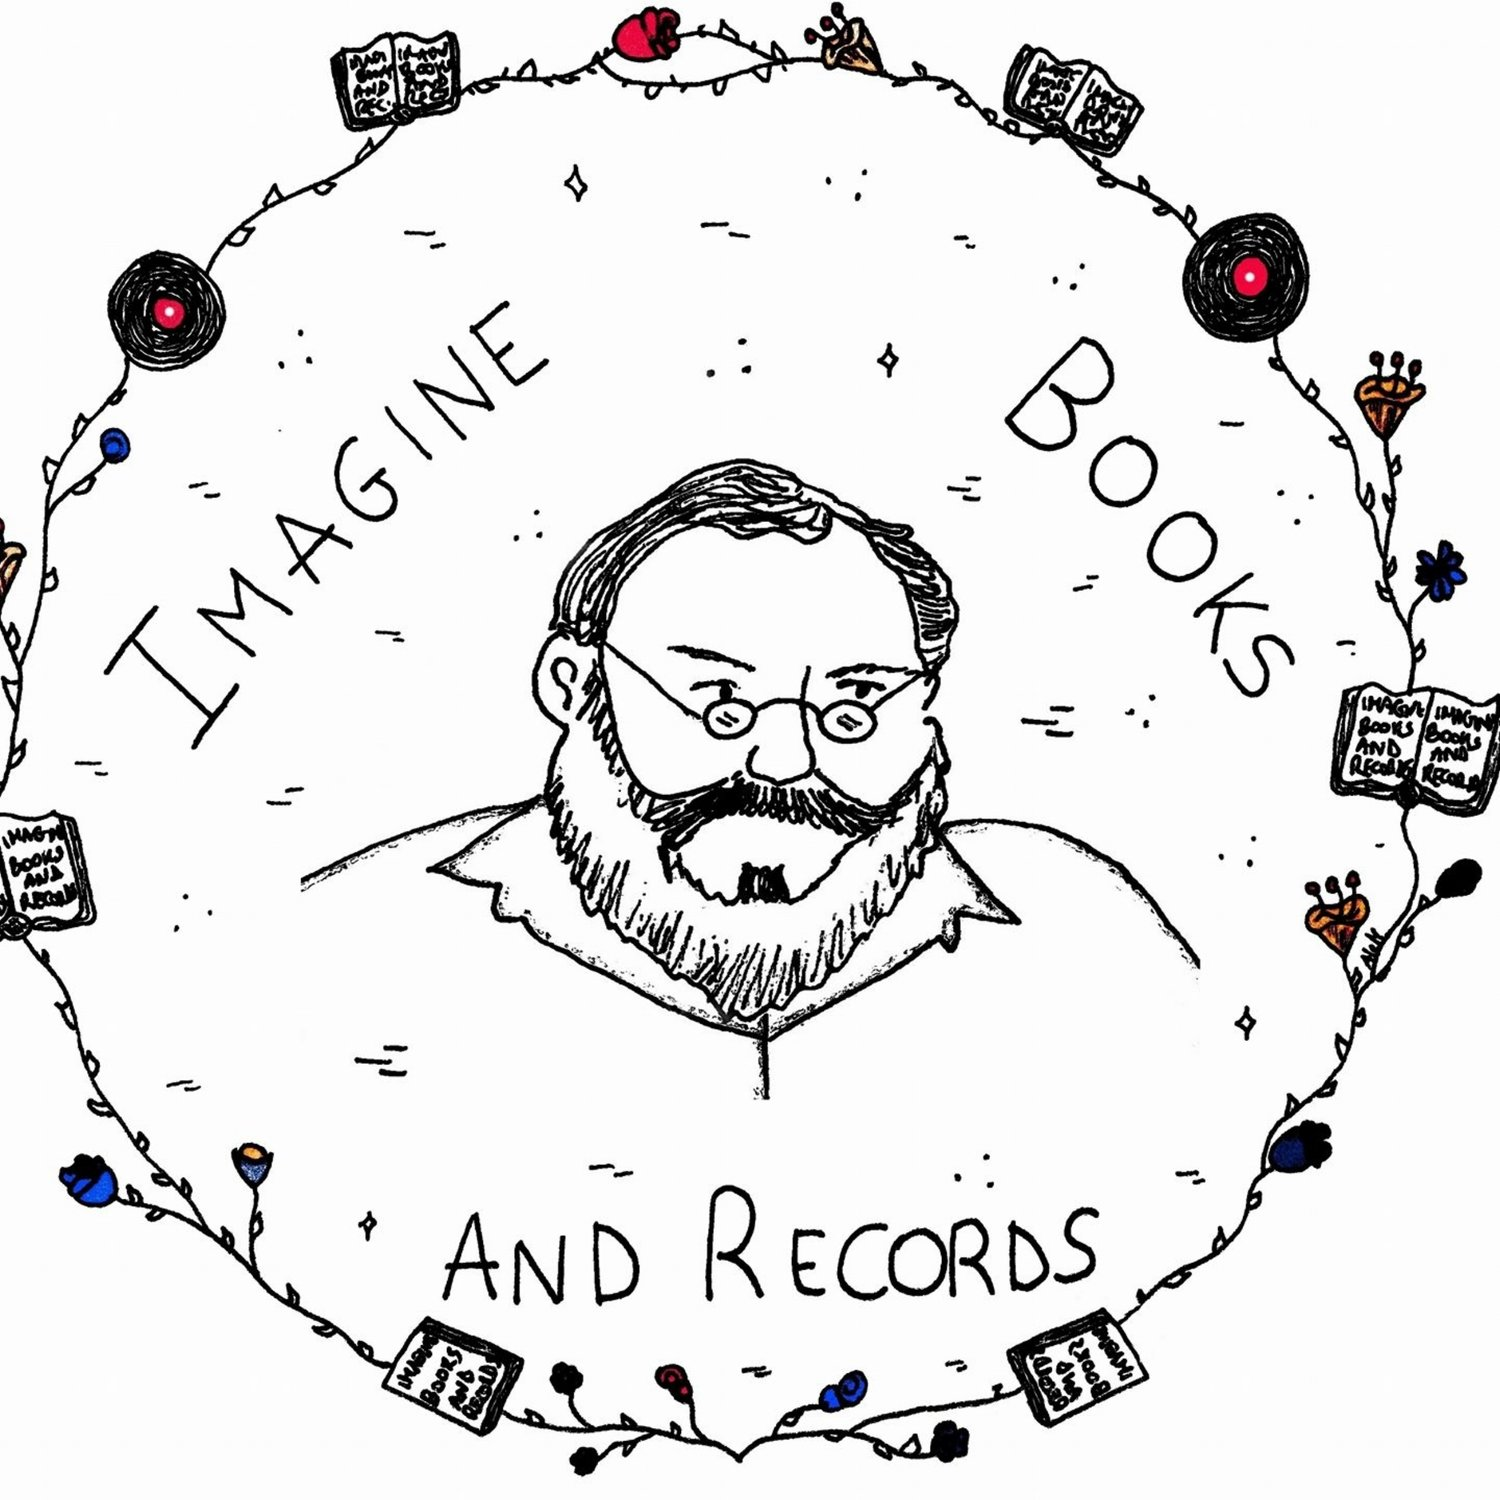 Imagine Books and Records